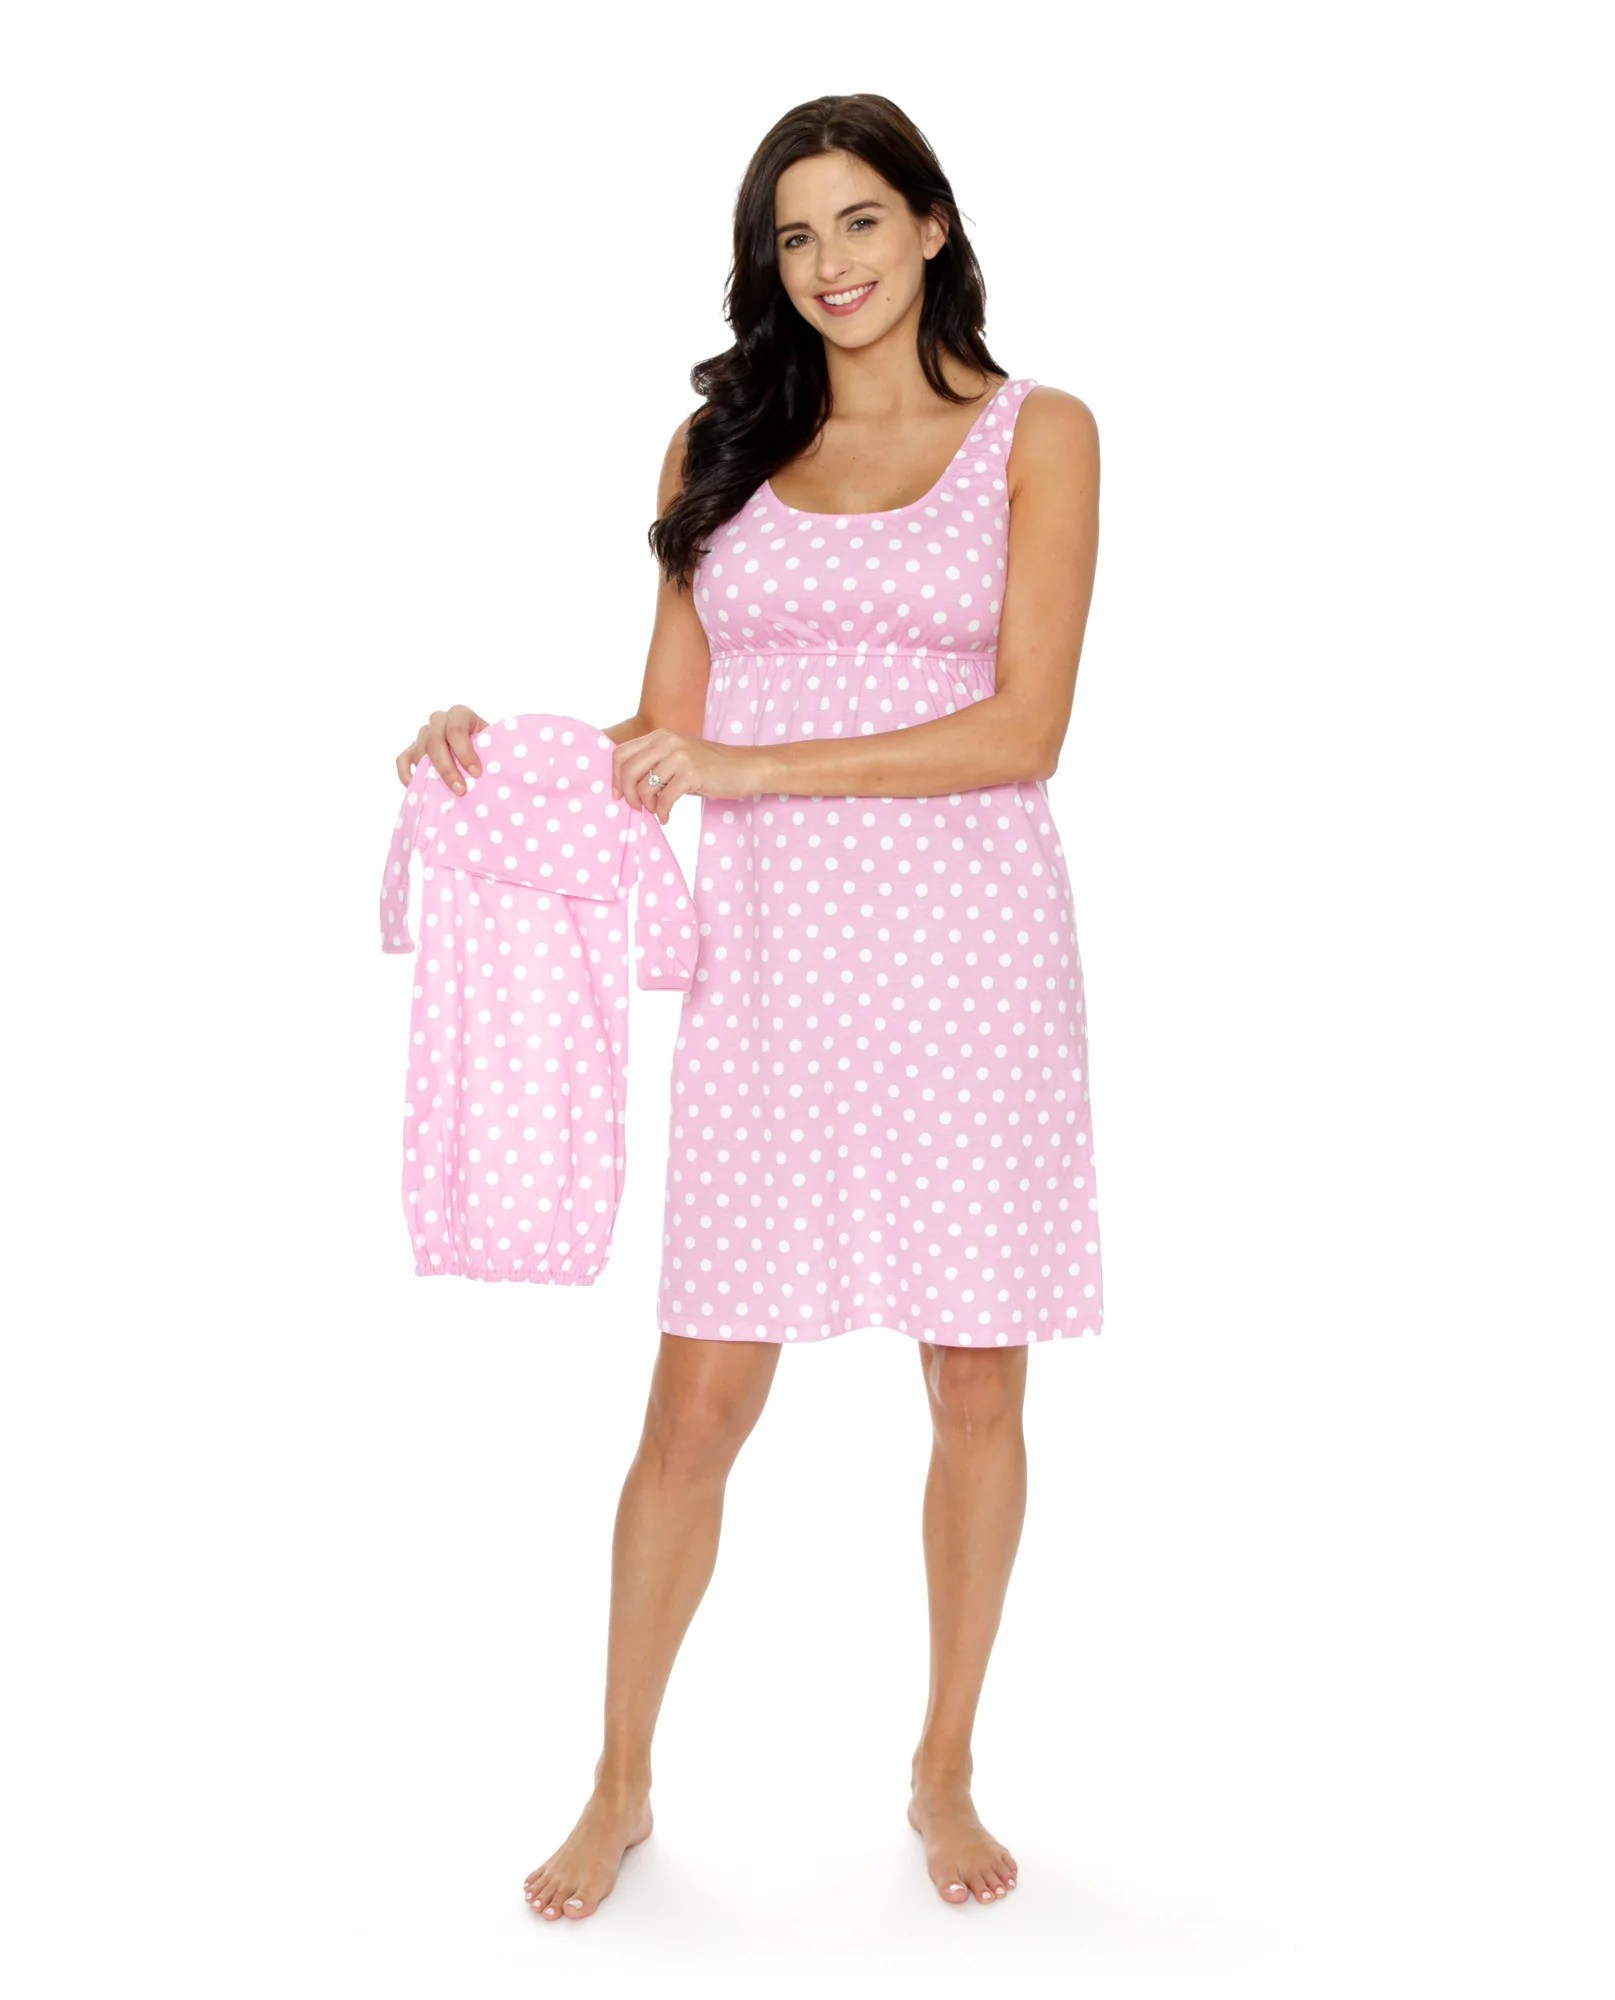 ded6af60e2ea3 Molly Maternity Delivery Nursing Nightgown Robe & Baby Receiving Gow